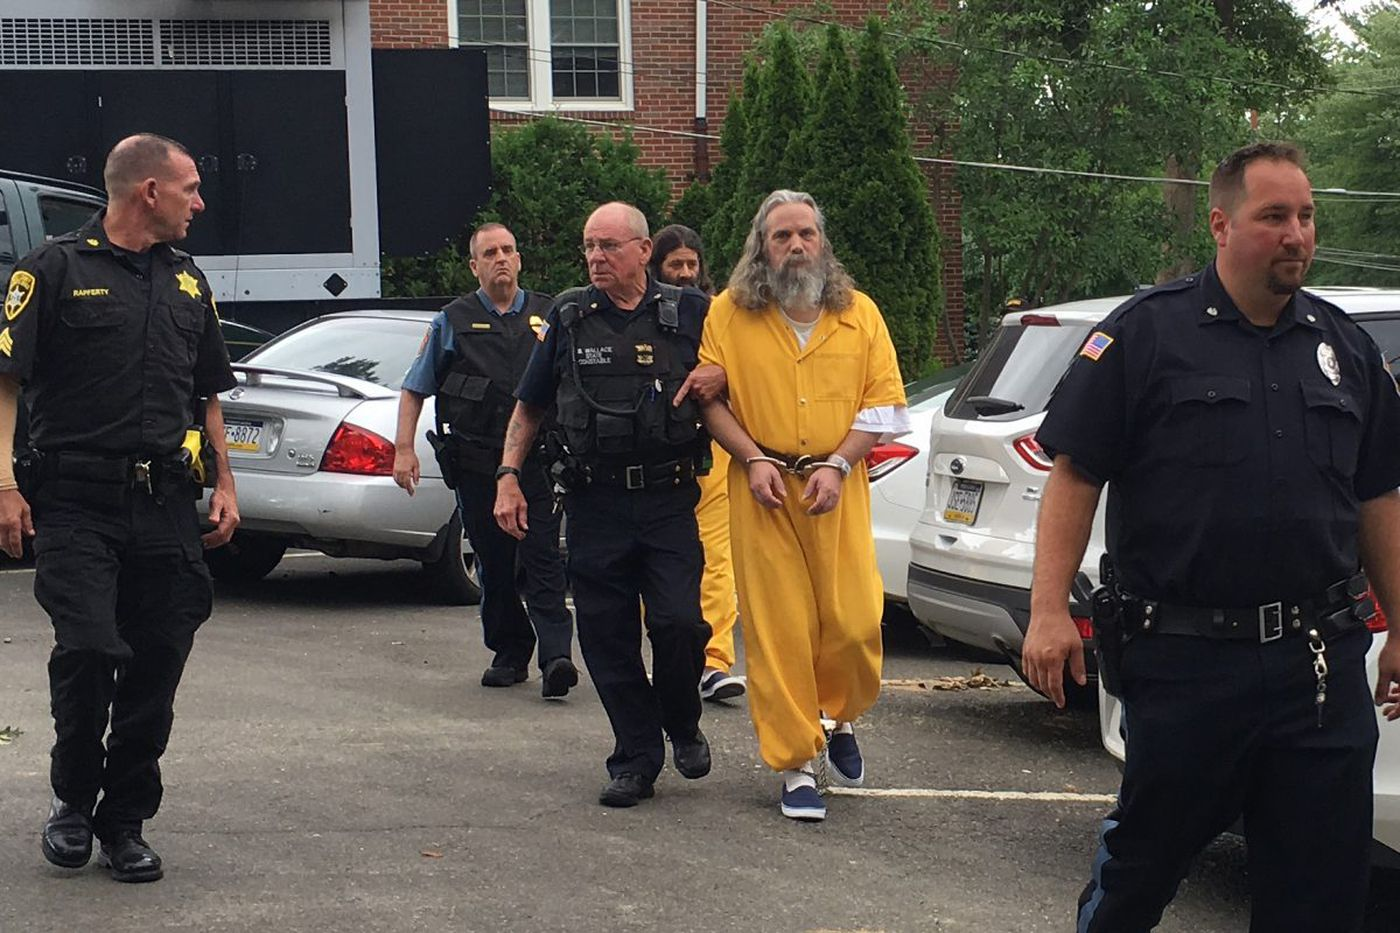 Lee Kaplan guilty on all sex-abuse counts in 'gifted' case